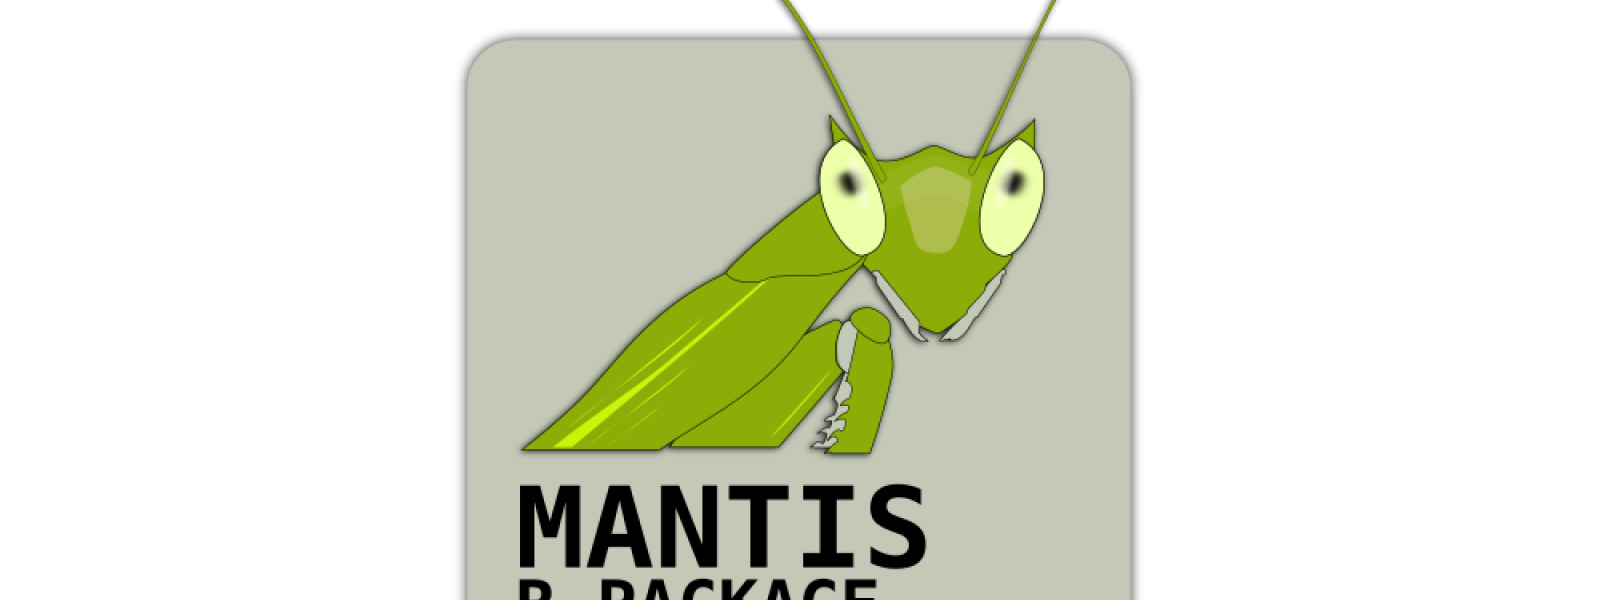 mantis logo hero